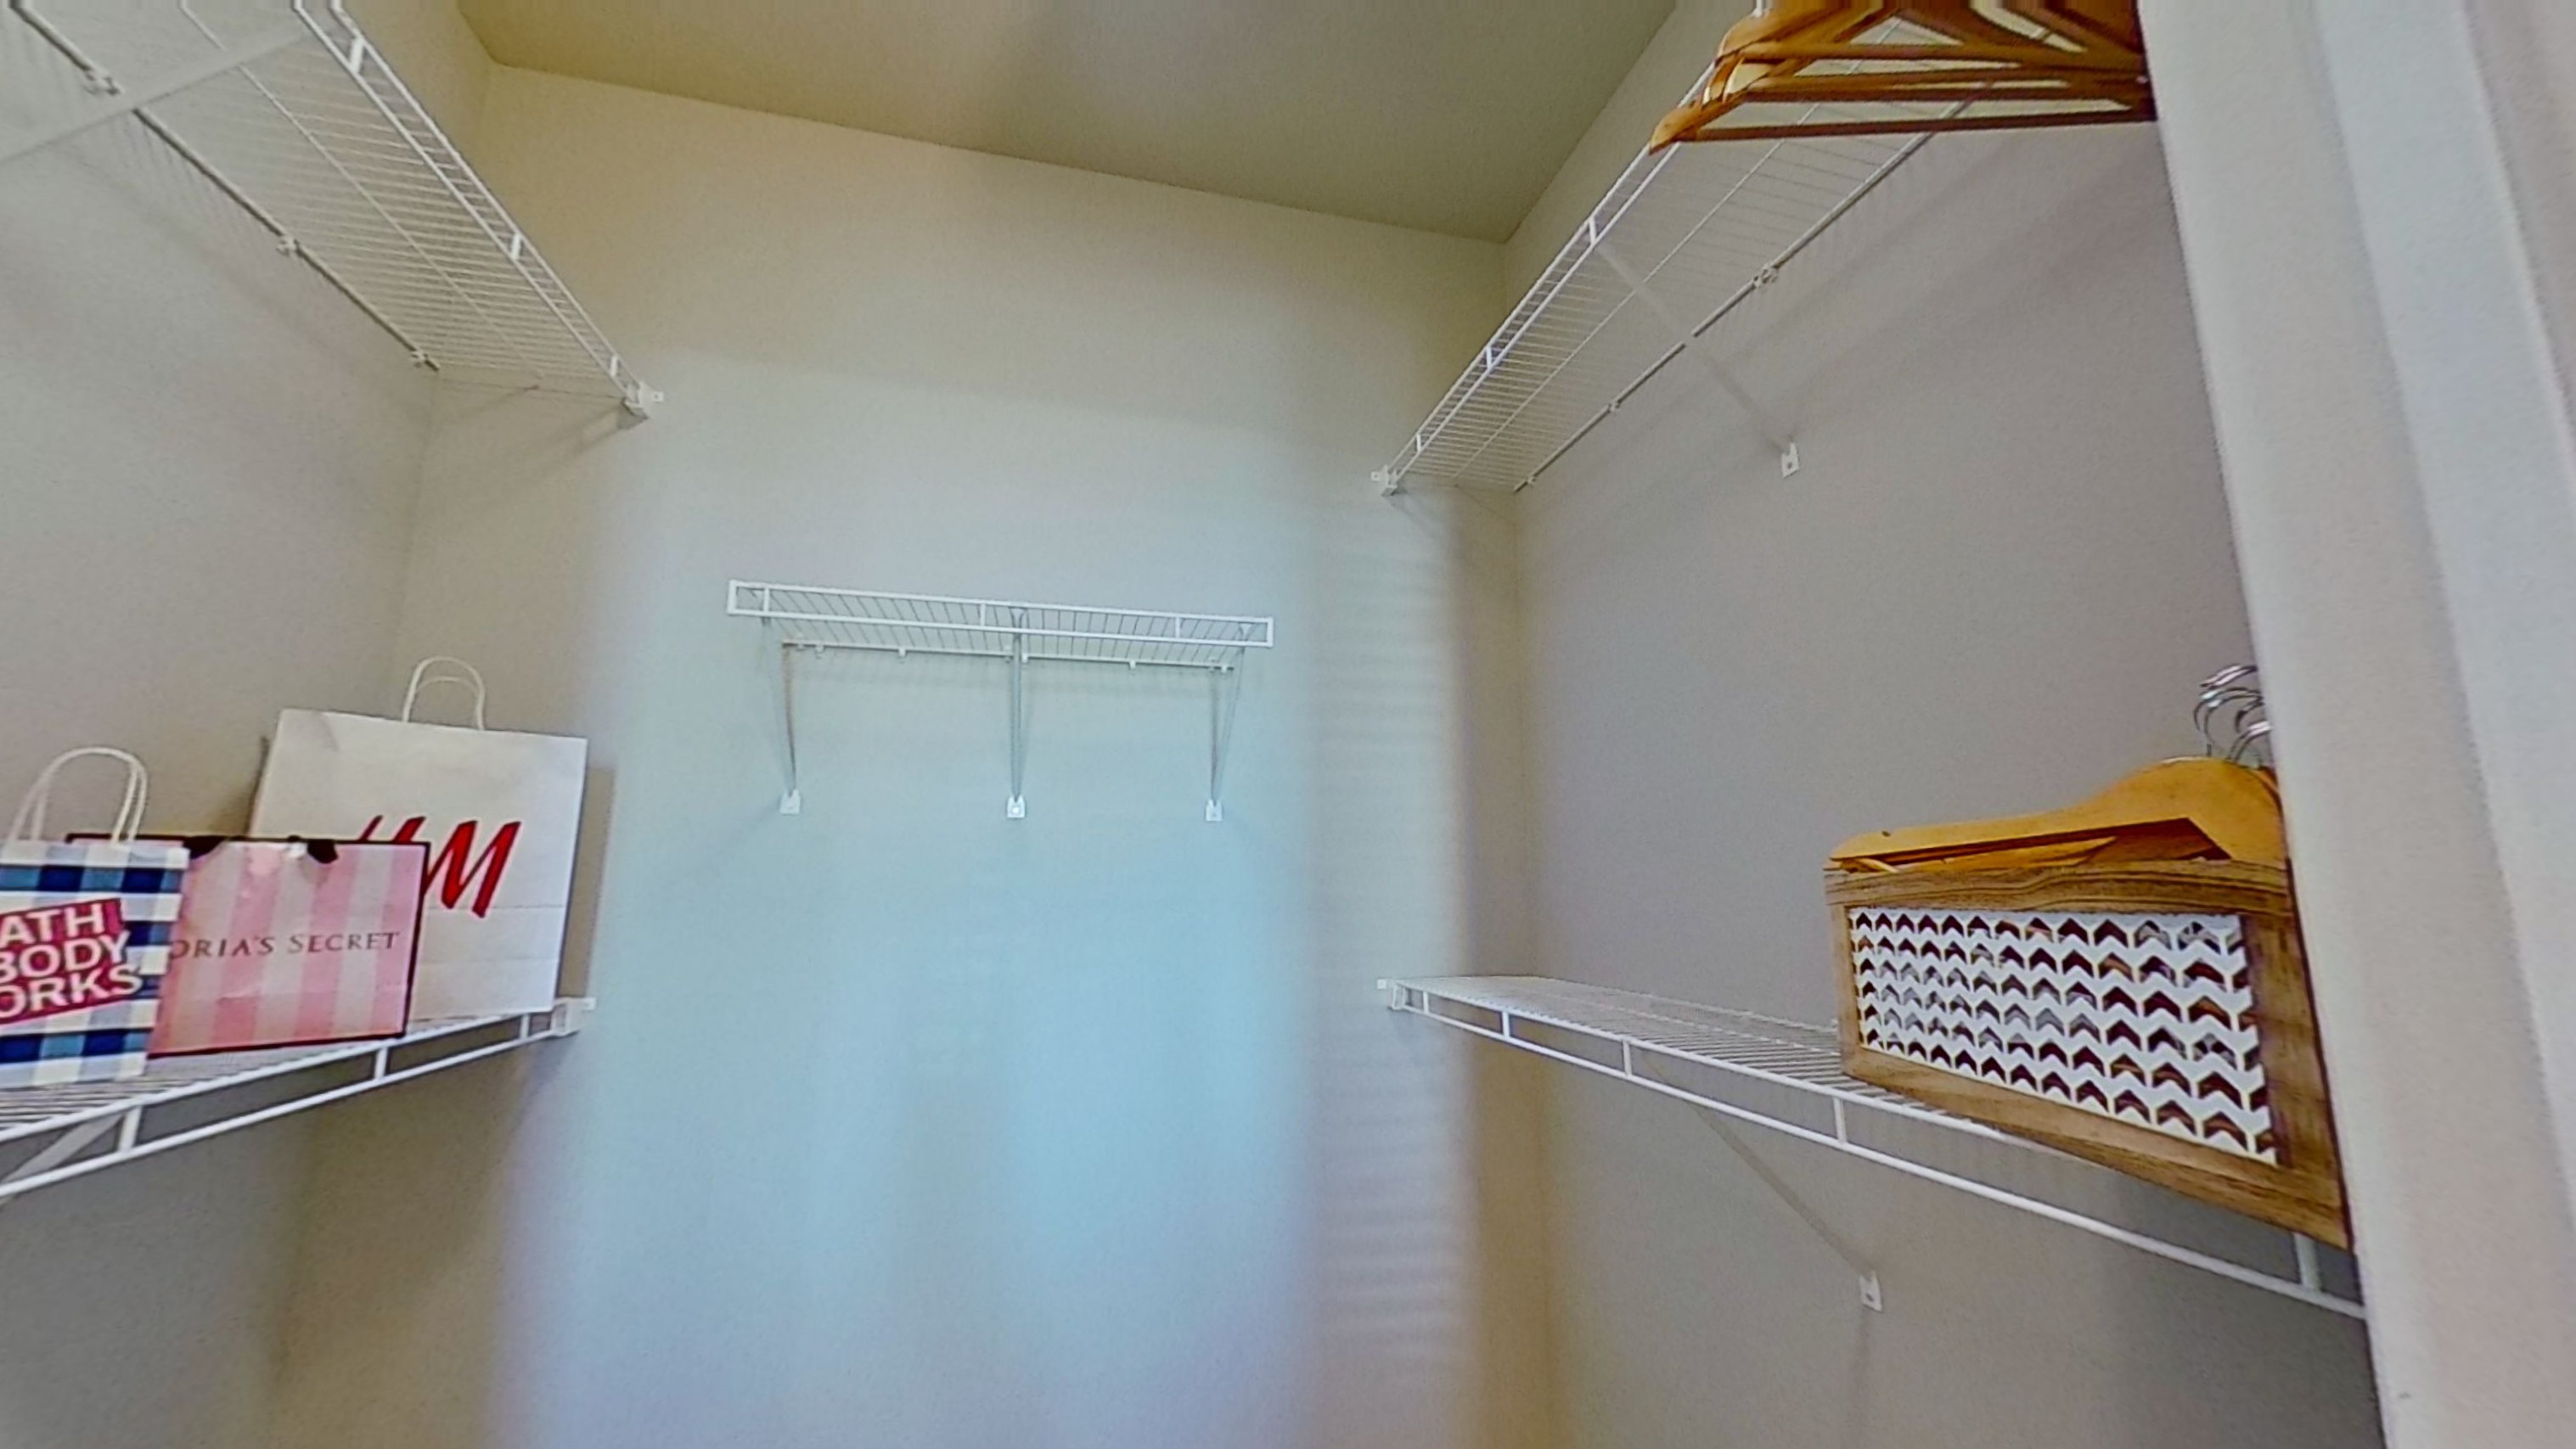 A3 Unit Walk-in Closet at the Vue at Creve Coeur Apartments in Creve Coeur, MO